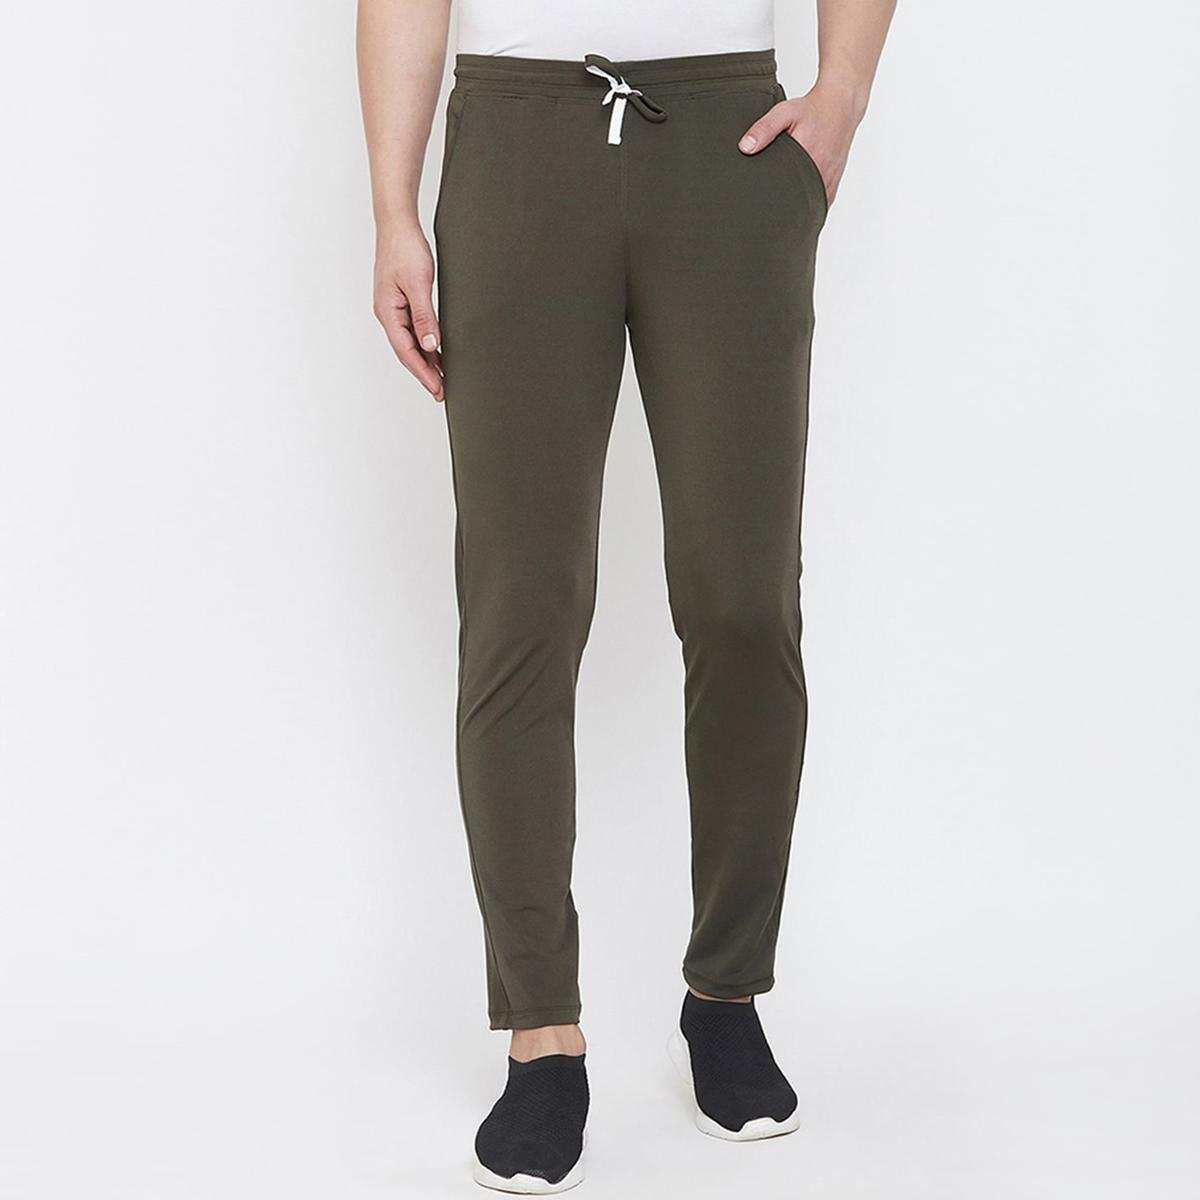 OMADAM - Men Olive Colored Casual Polyester Track Pant